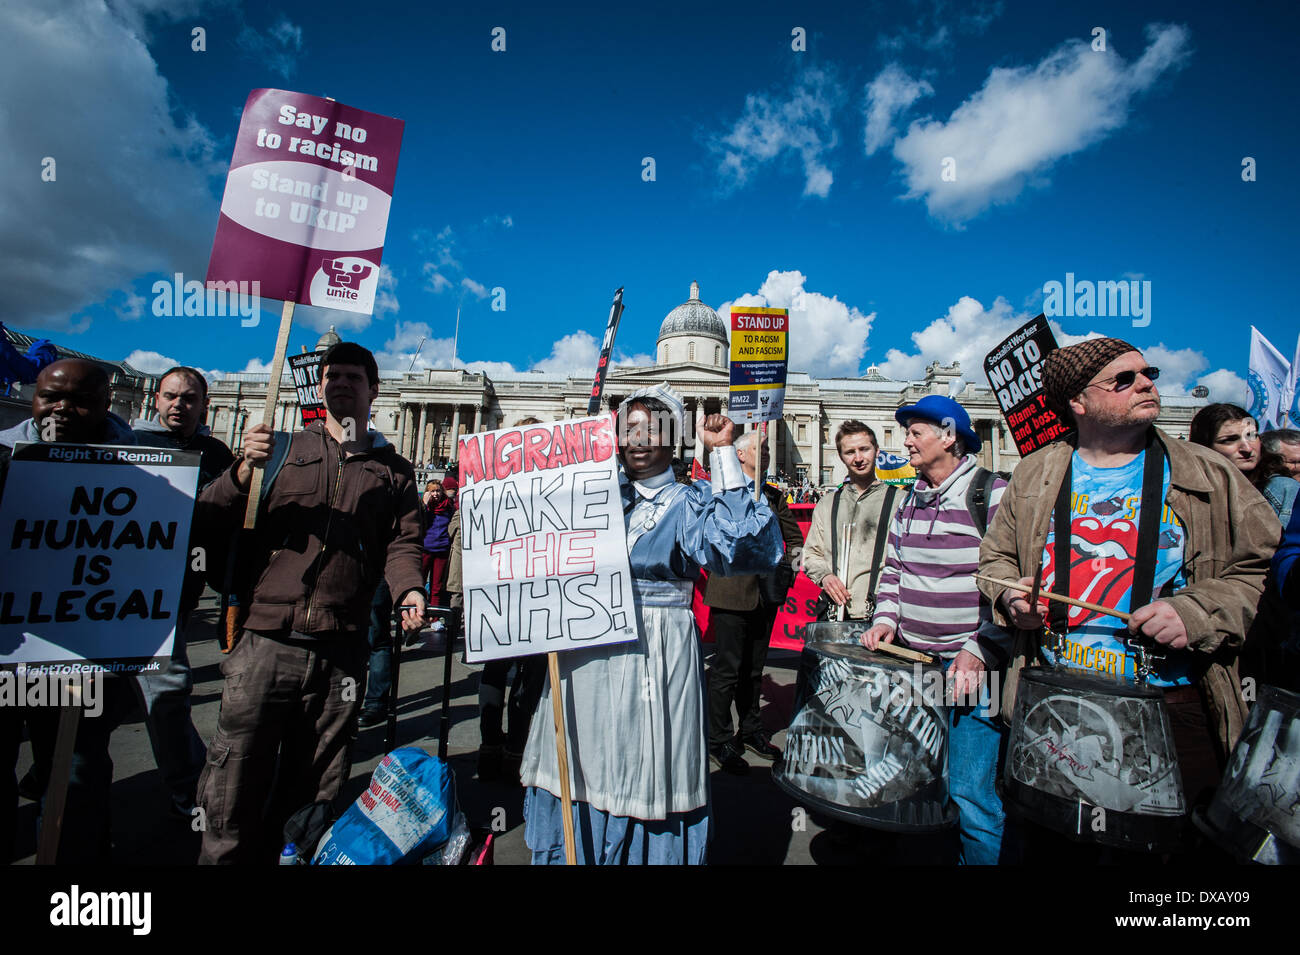 London, UK - 22 March 2014: a woman holds a placard reading 'Migrants make the NHS!' during the celebrations of the  United Nations International Anti-Racism Day. Credit:  Piero Cruciatti/Alamy Live News - Stock Image